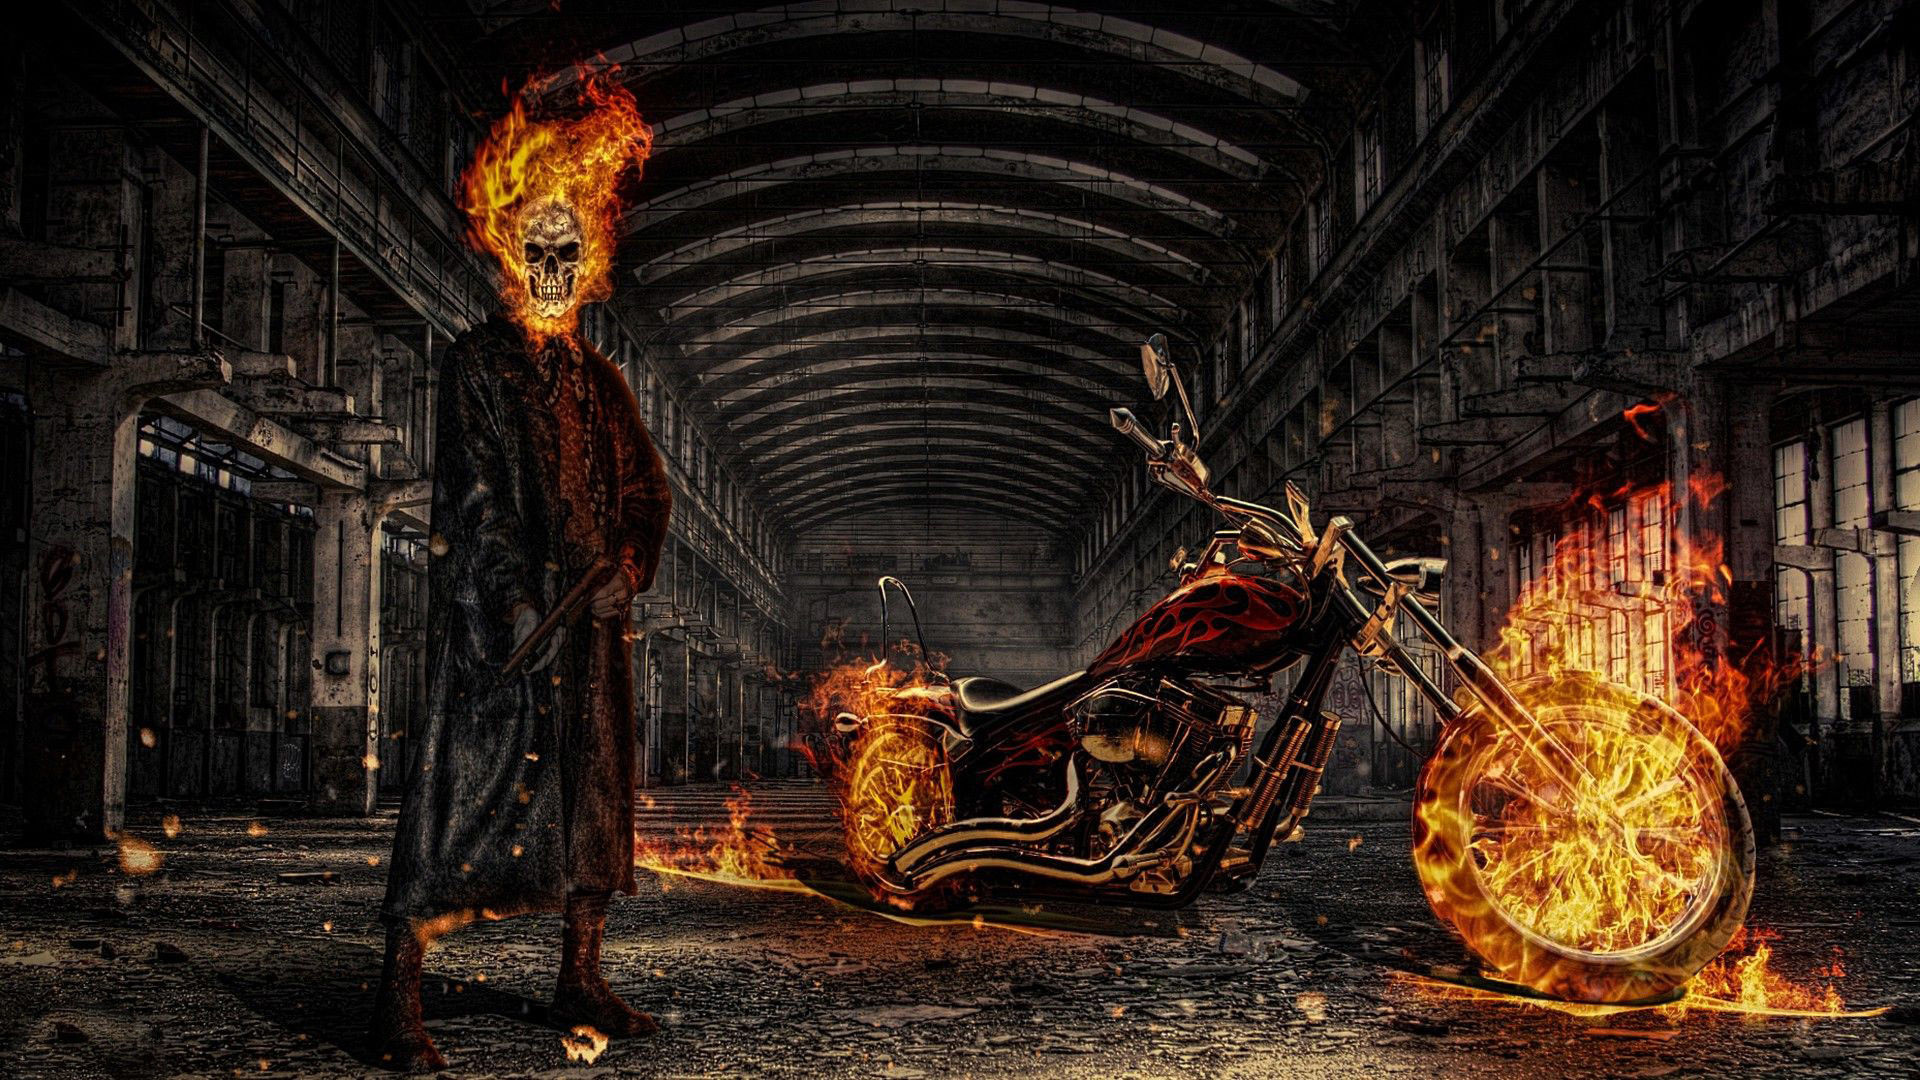 ghost rider wallpaper (74+ images)